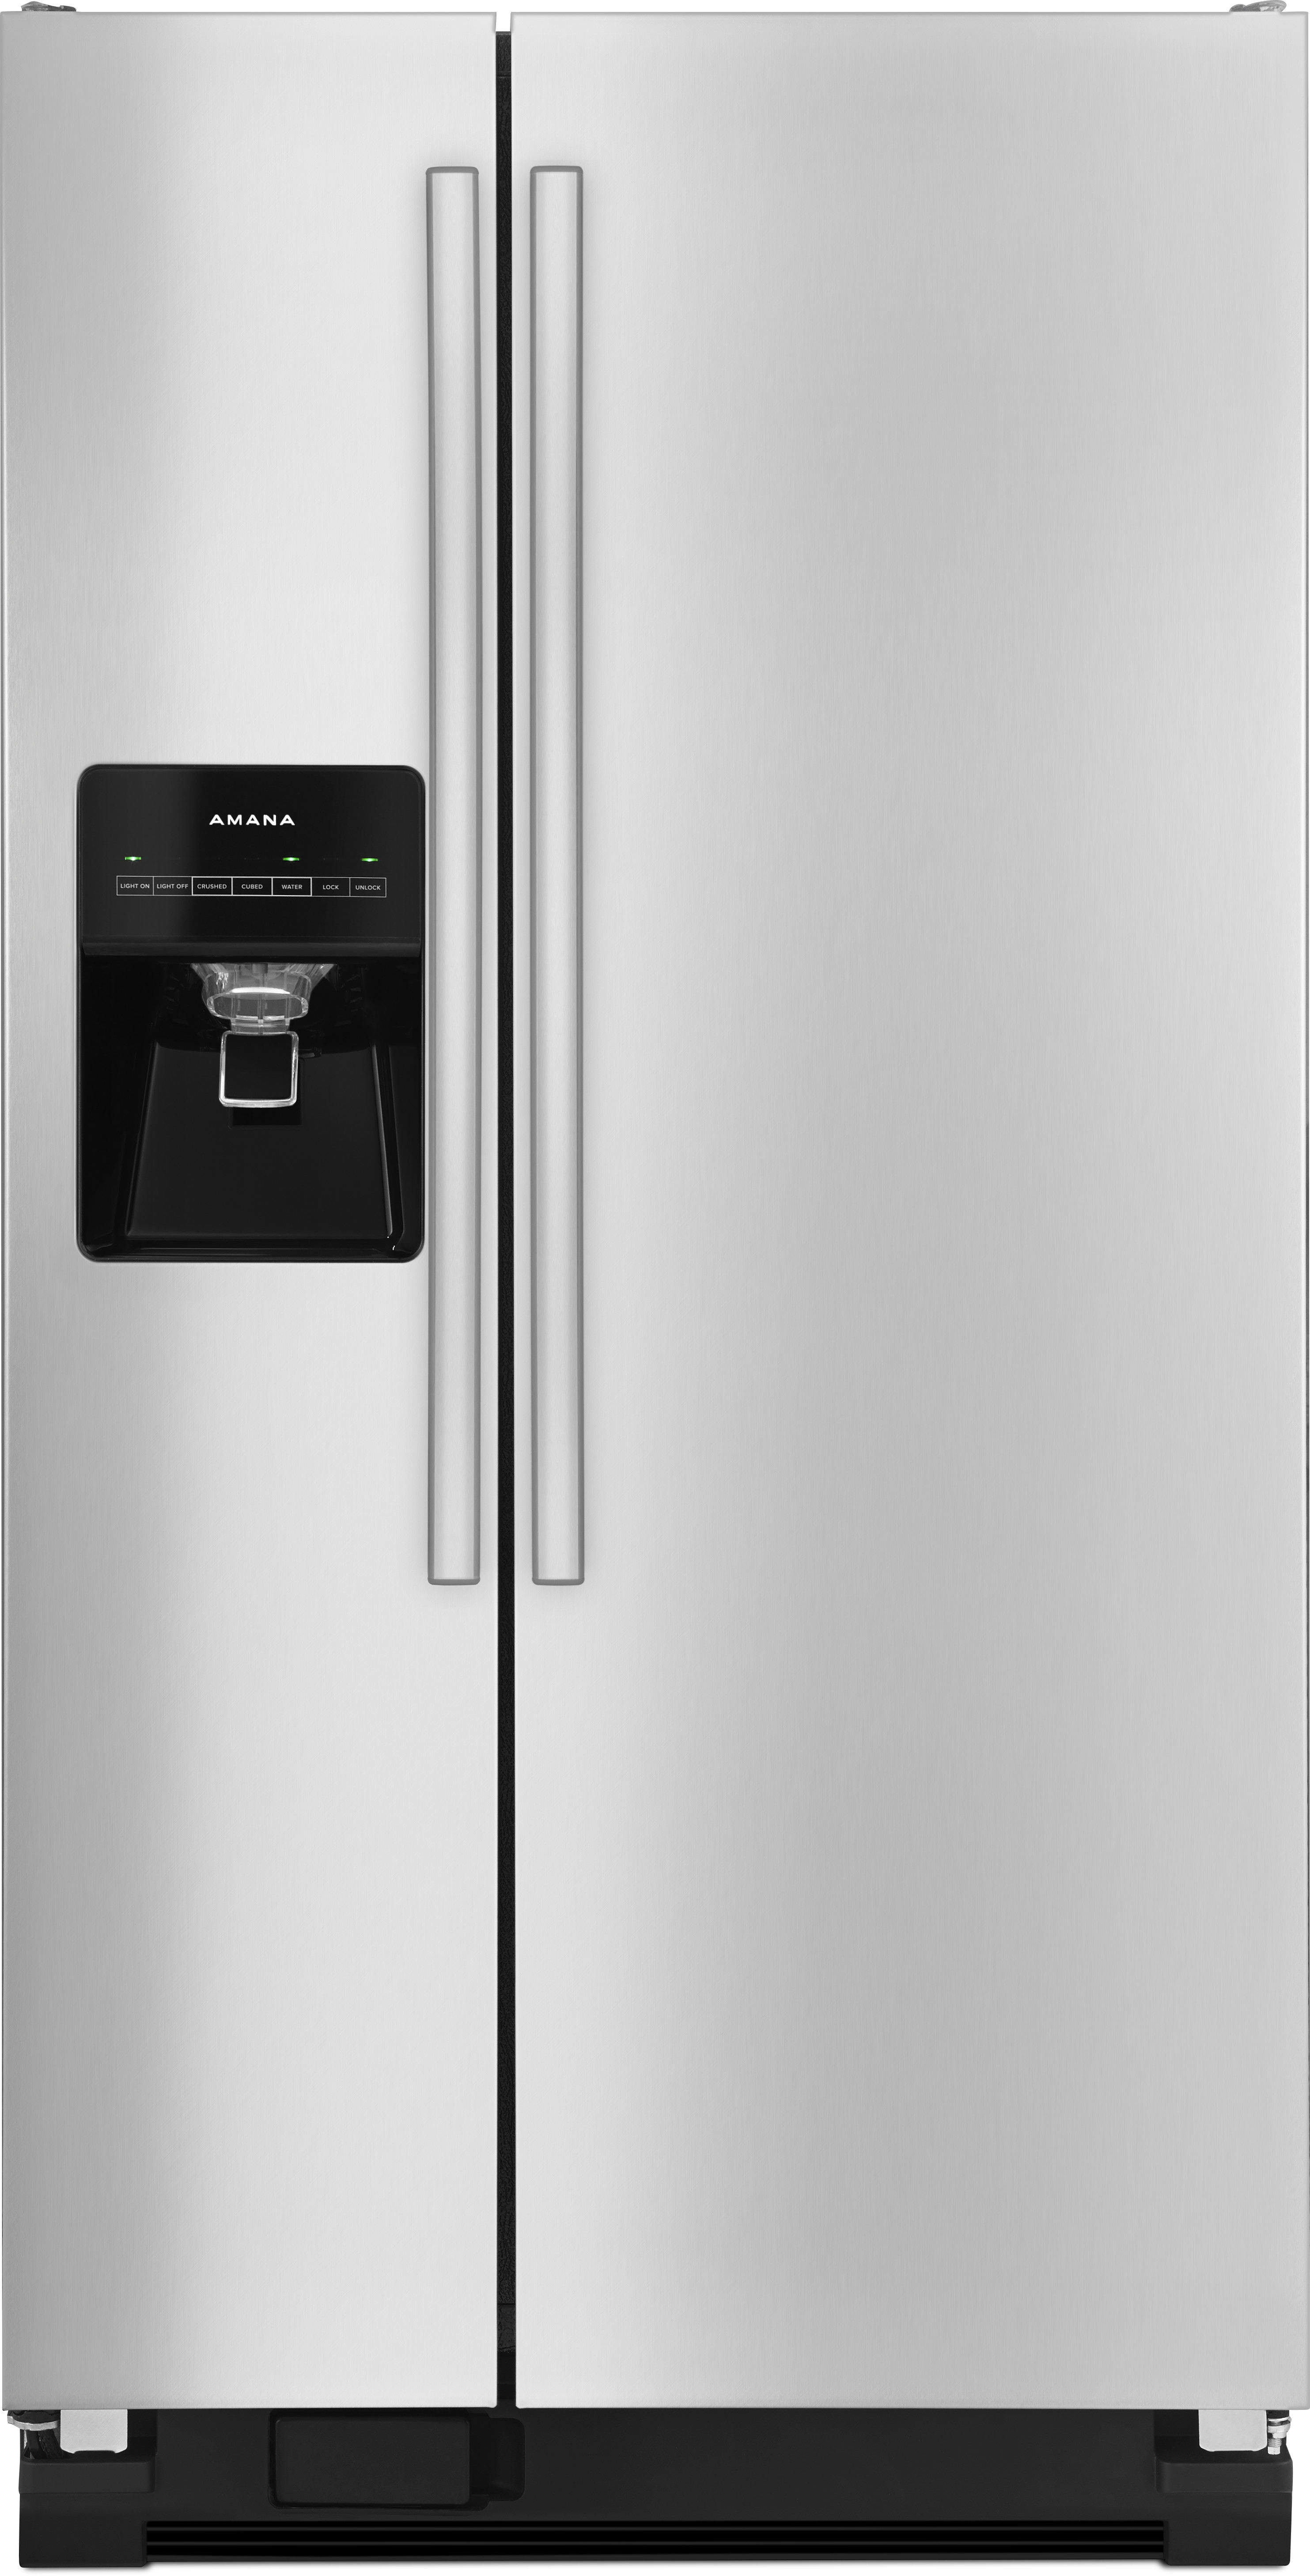 Amana Asi2275frs 33 Inch Side By Side Refrigerator With 21